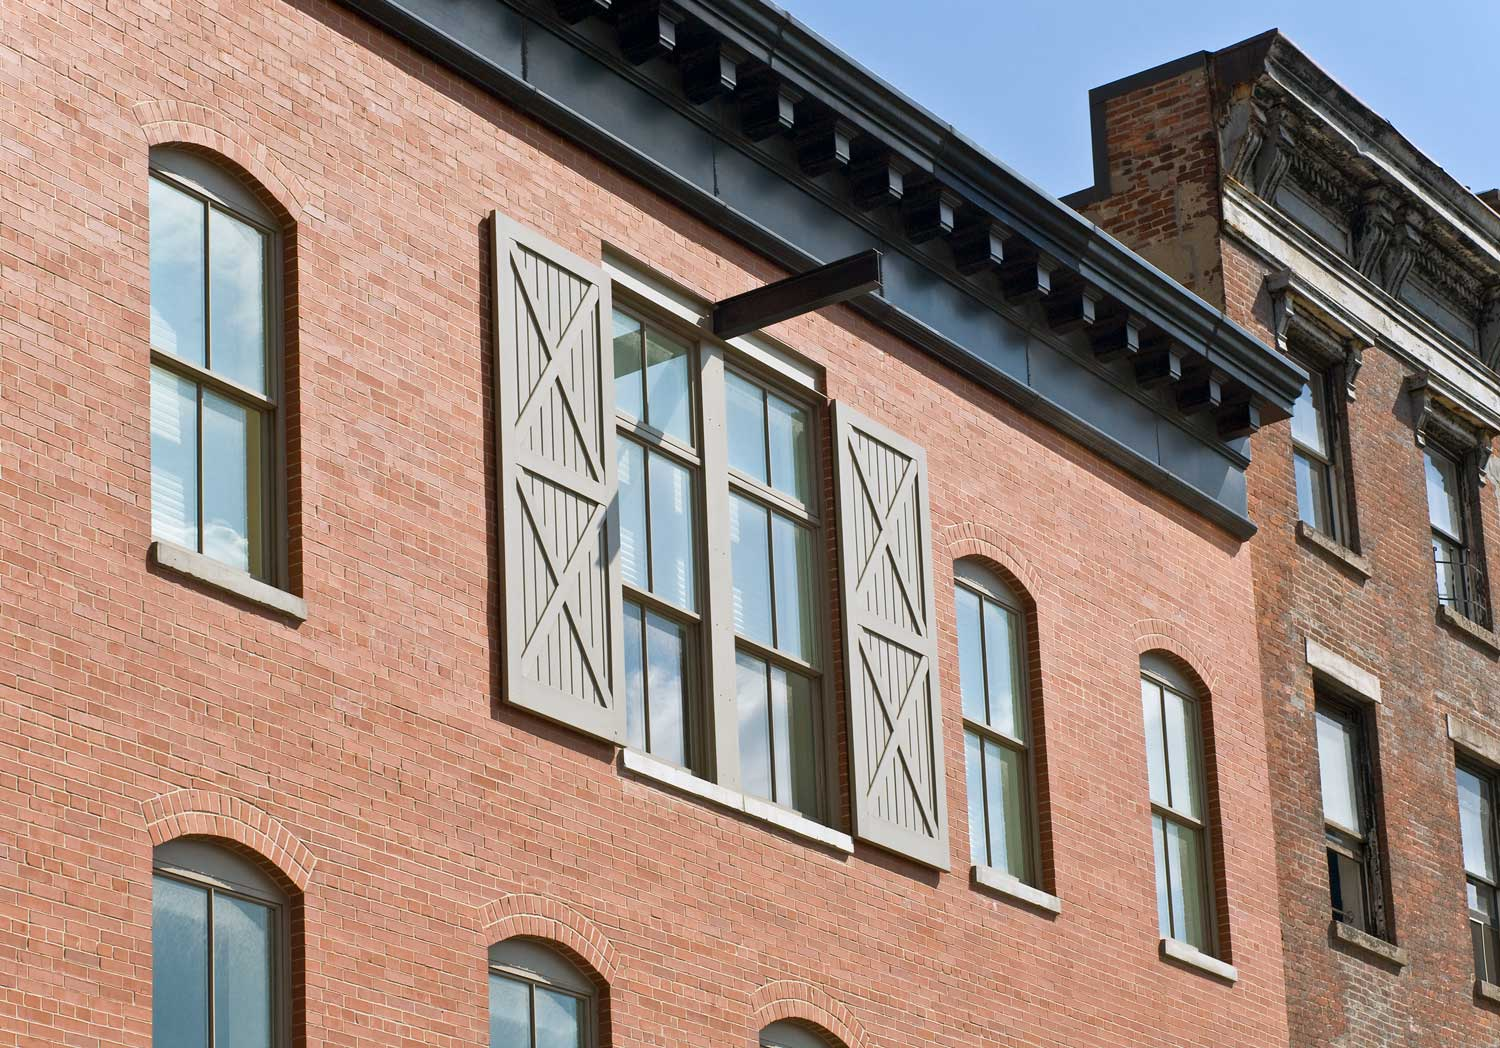 Facade detail of this historic rebuilt and expansion project by OCV.